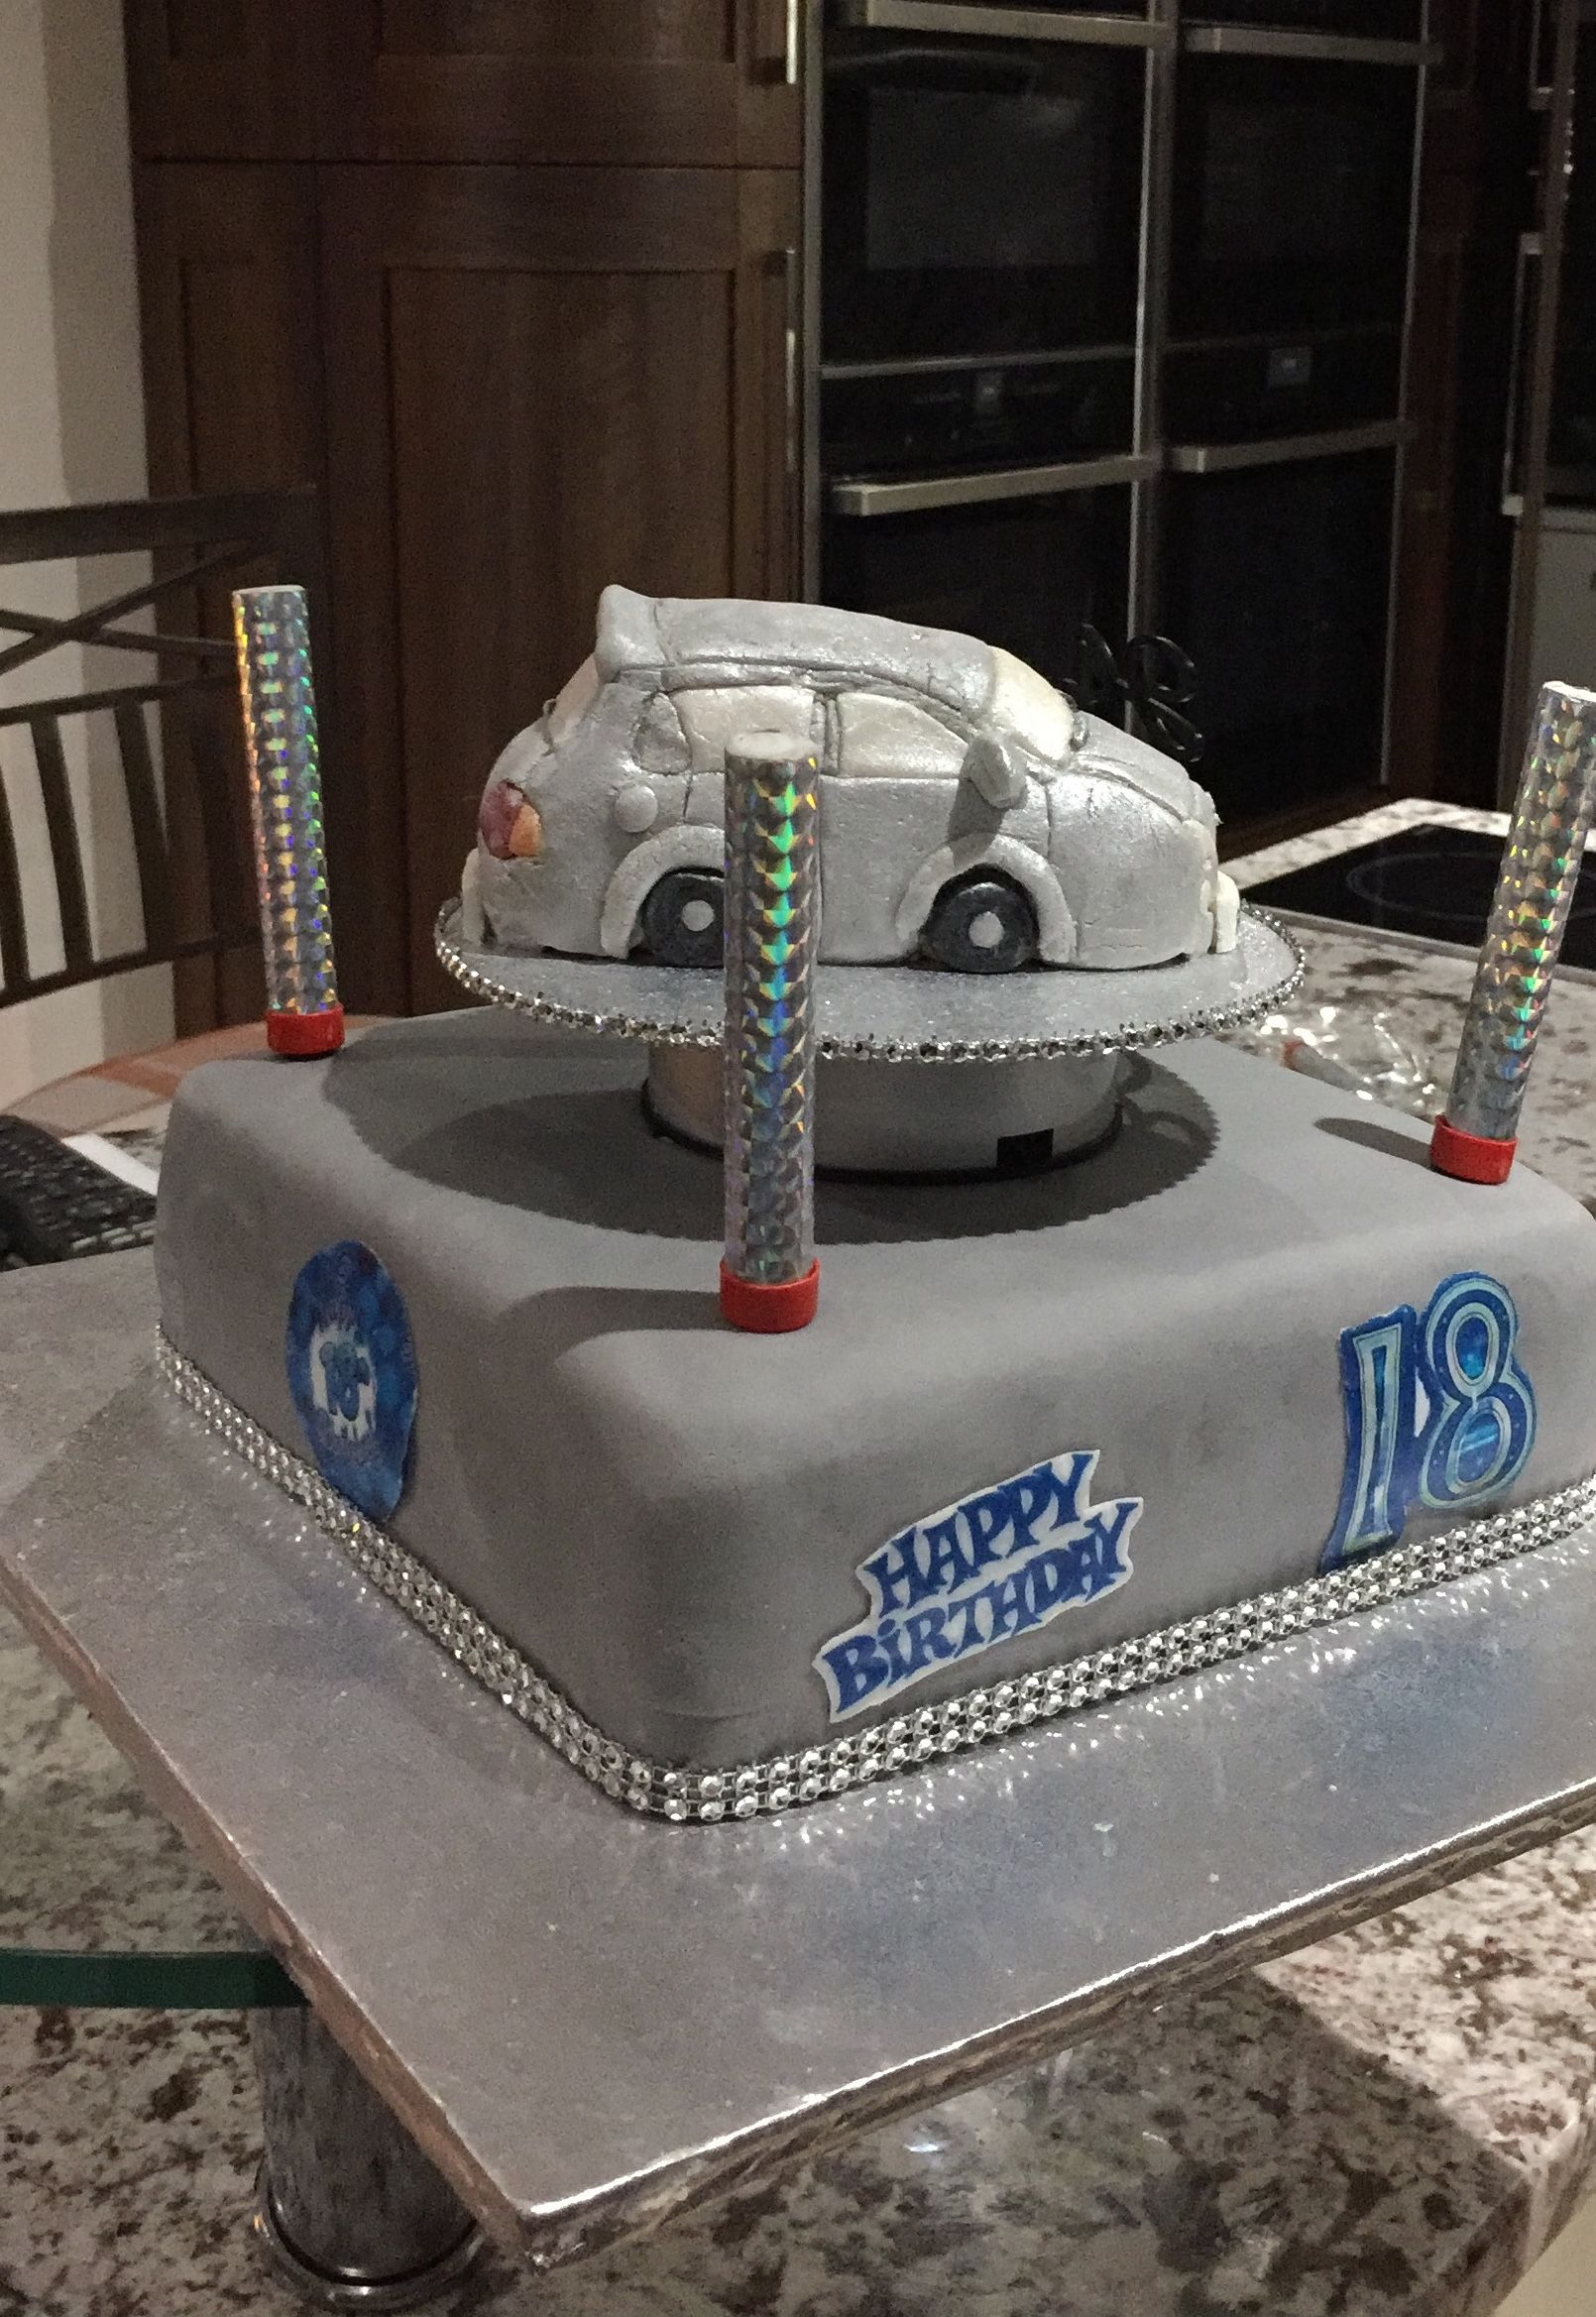 Suzuki Swift 18th Birthday Cake Birthday Cakes Pinterest 18th